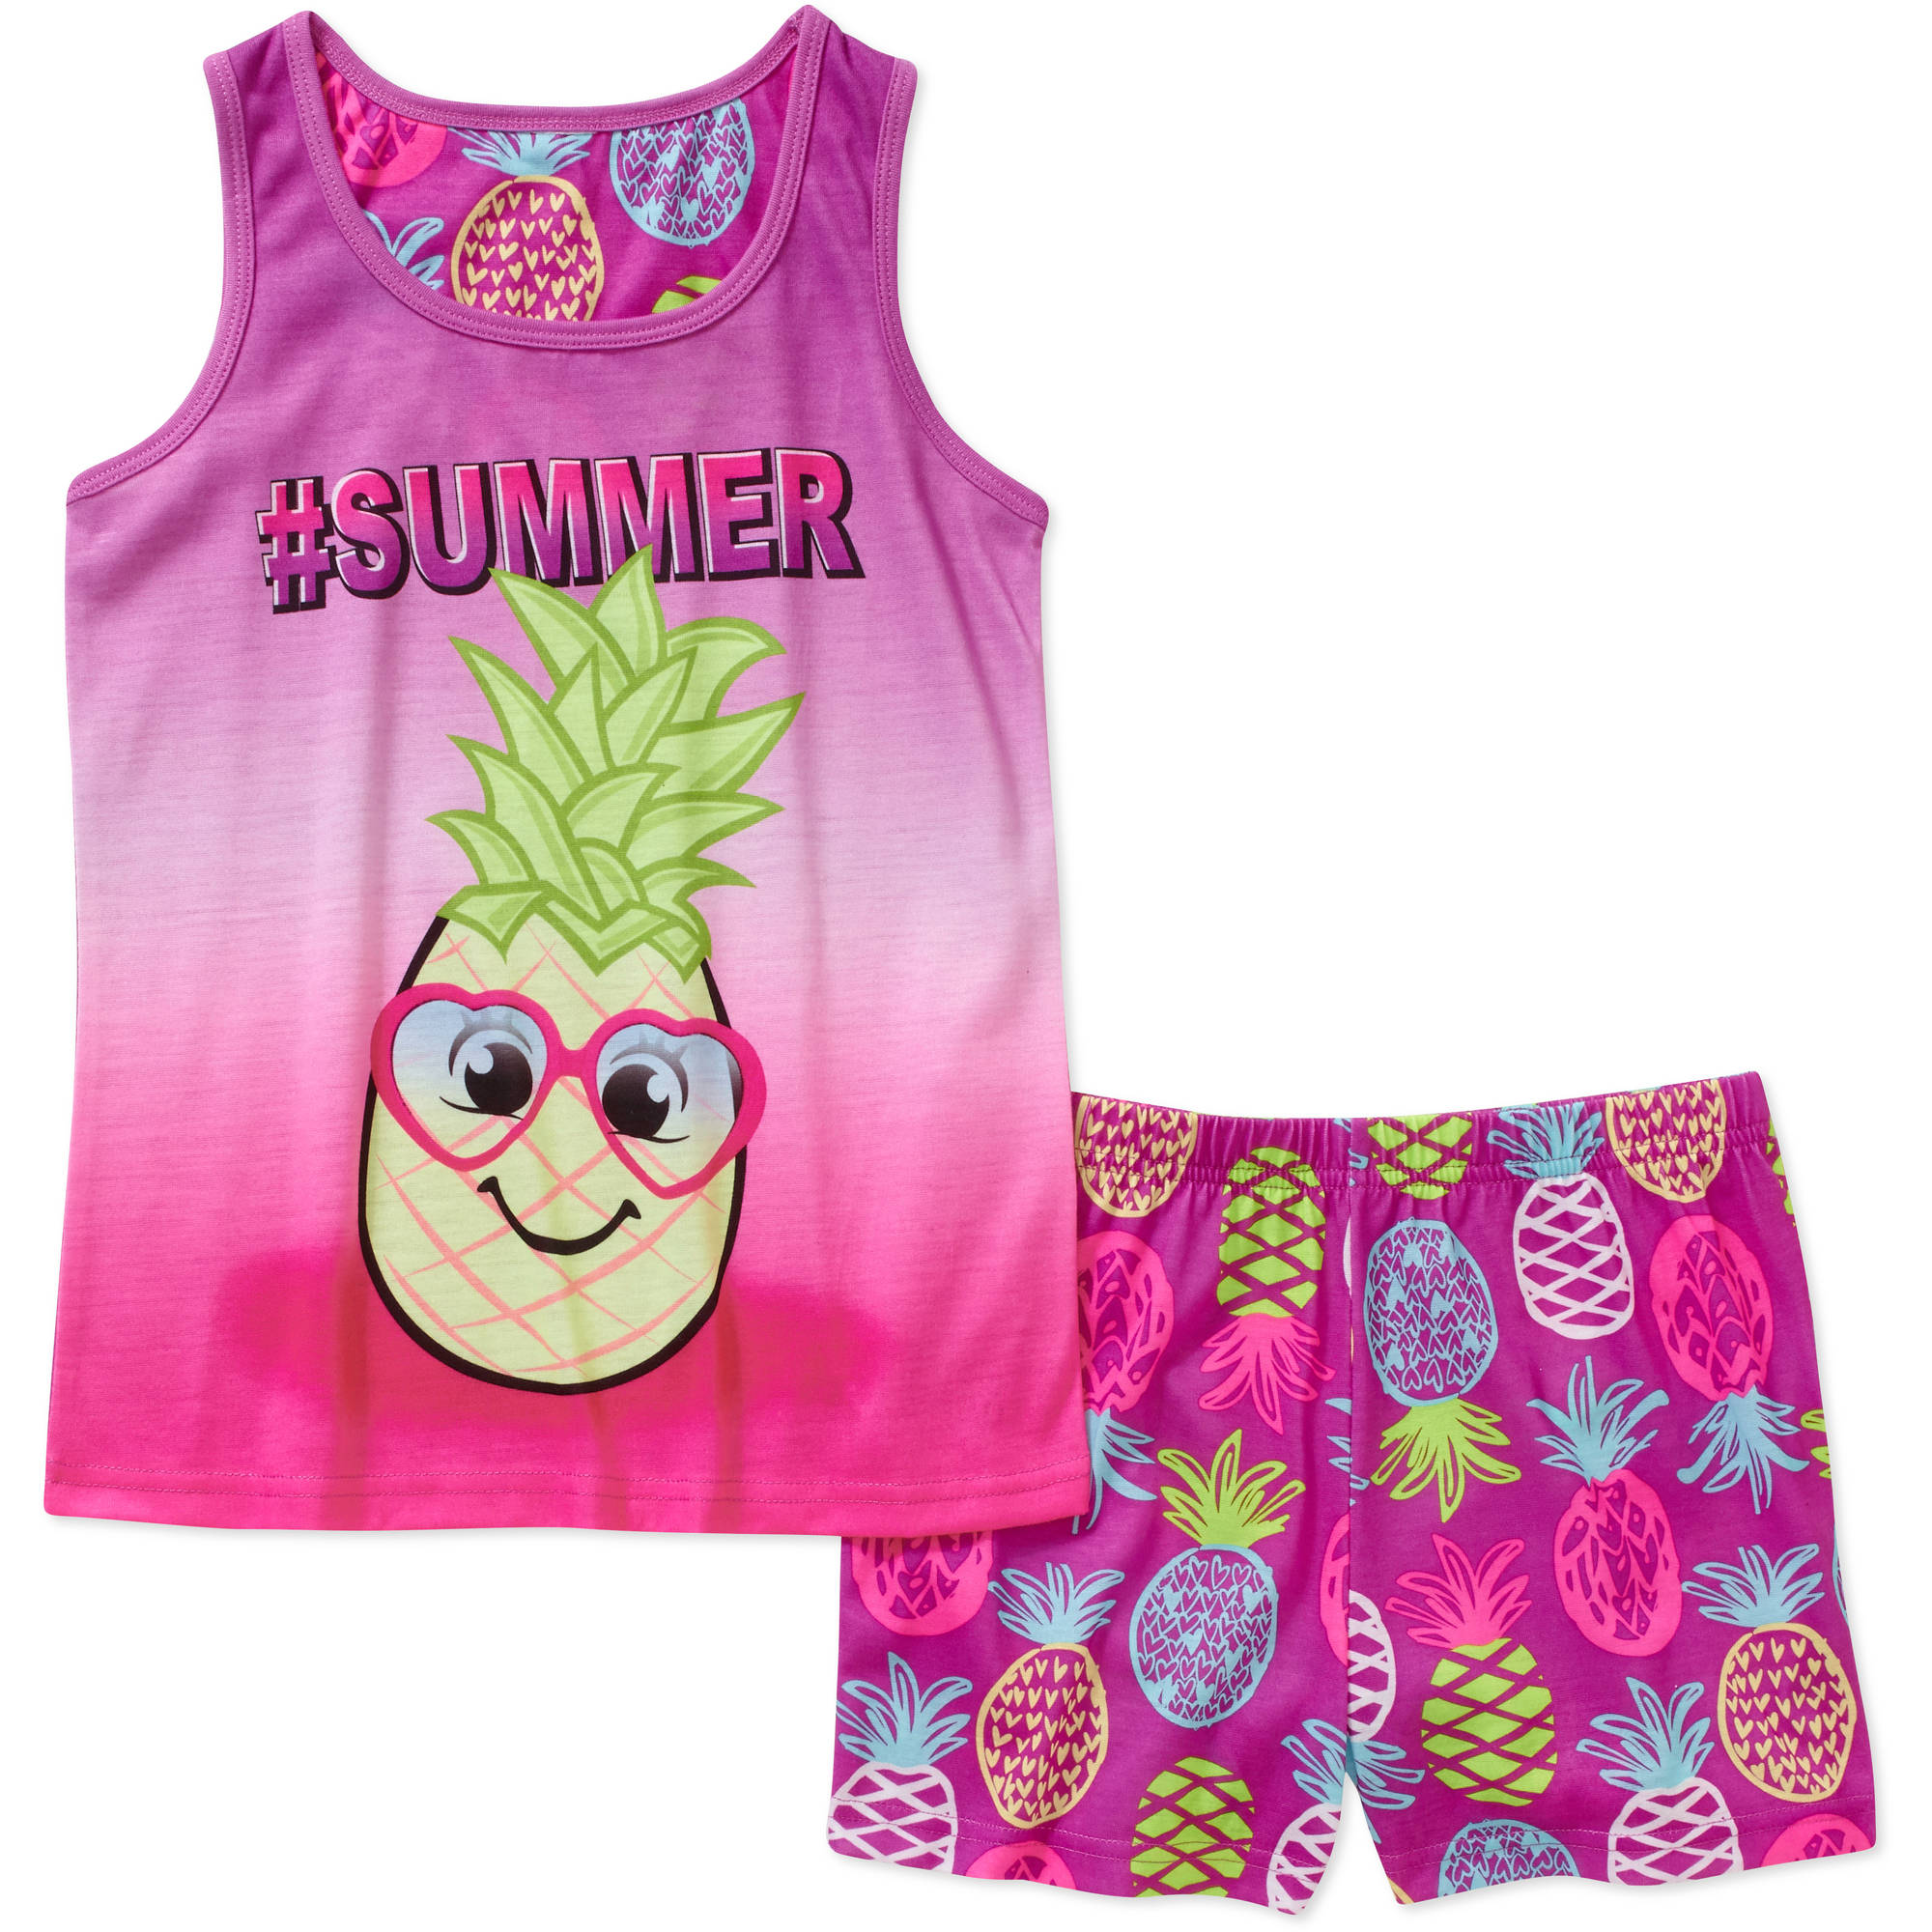 Girls' Graphic Sleep Tank Top and Short 2 Piece Pajama Set